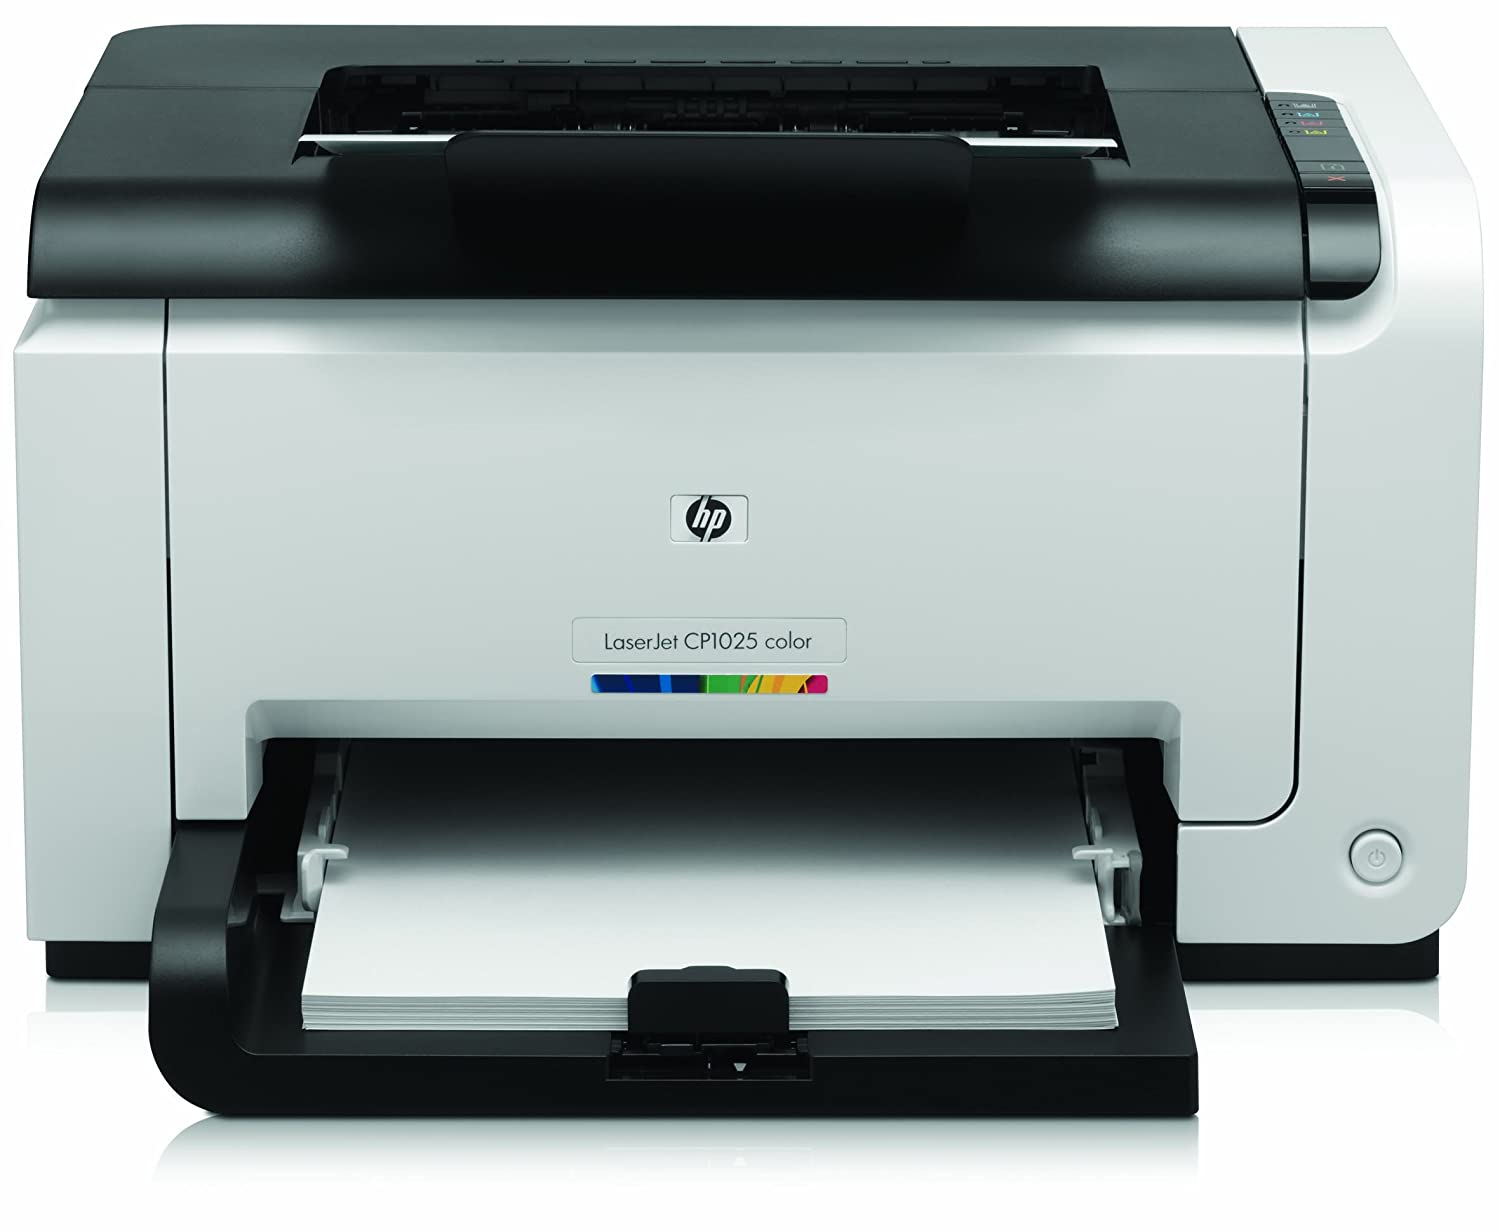 HP Laserjet Pro CP1025 Colour Printer Laser Printers